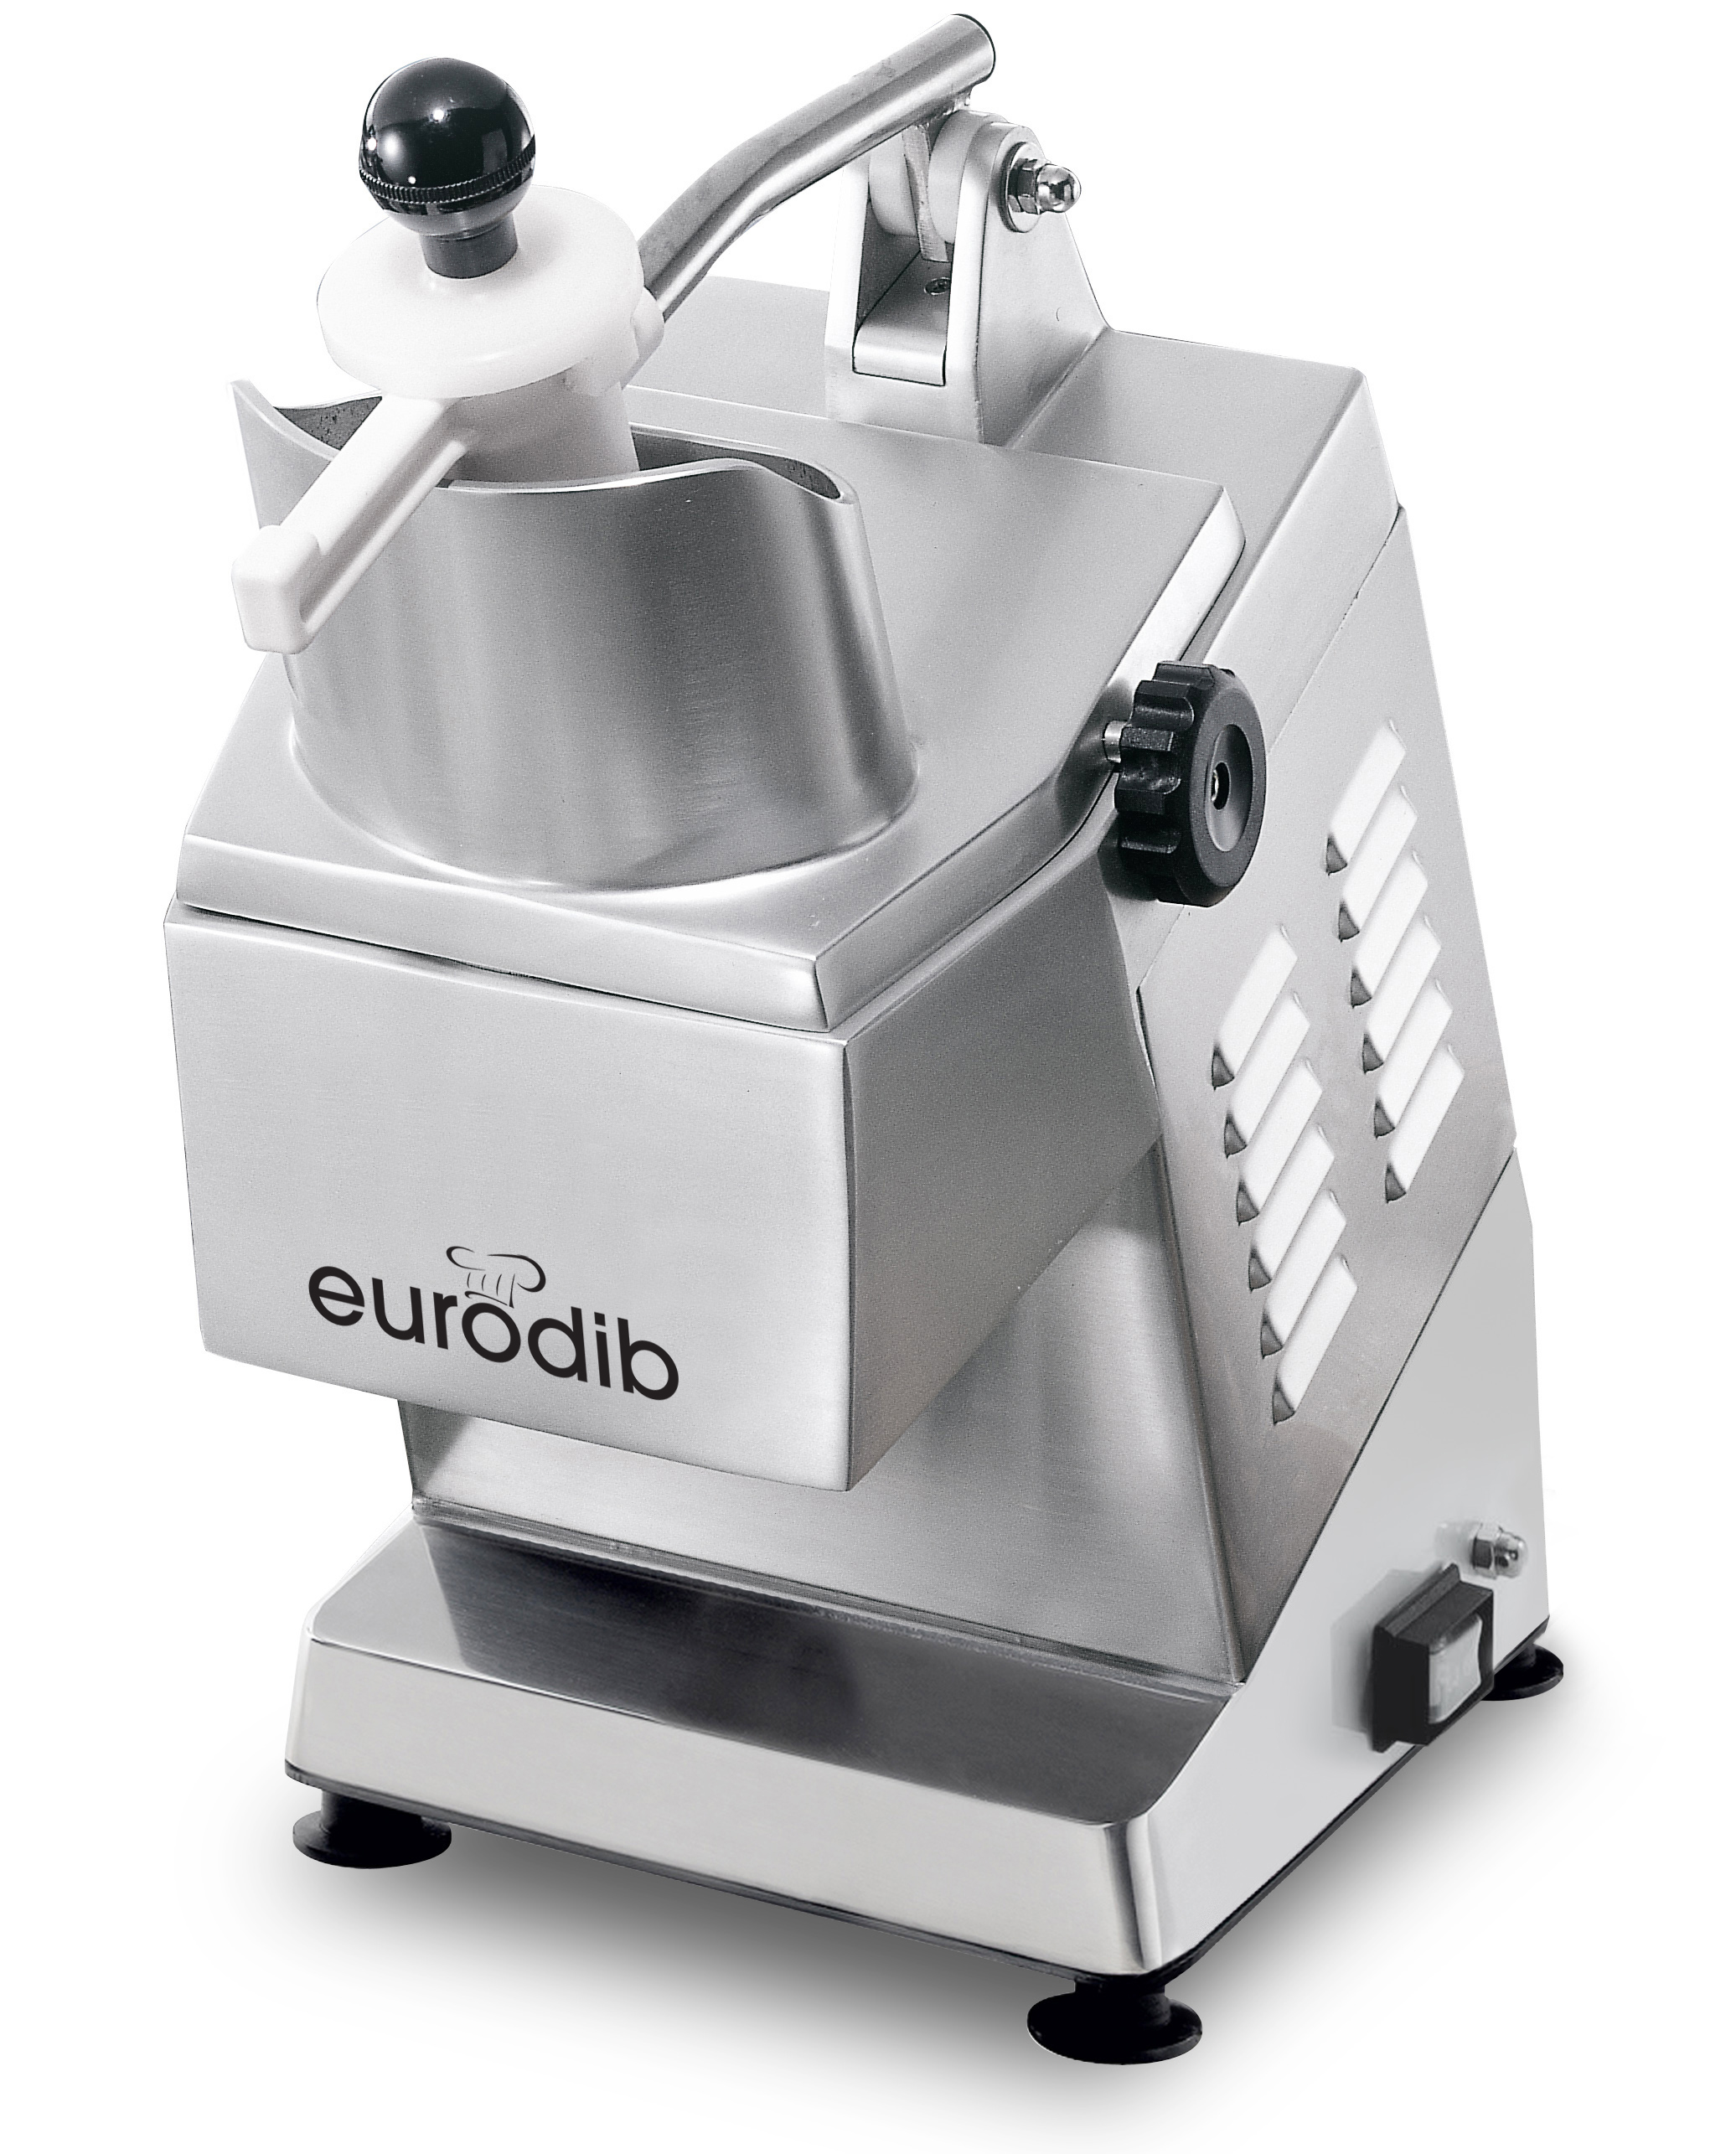 Eurodib USA DT7 vegetable & cheese slicers - accessories